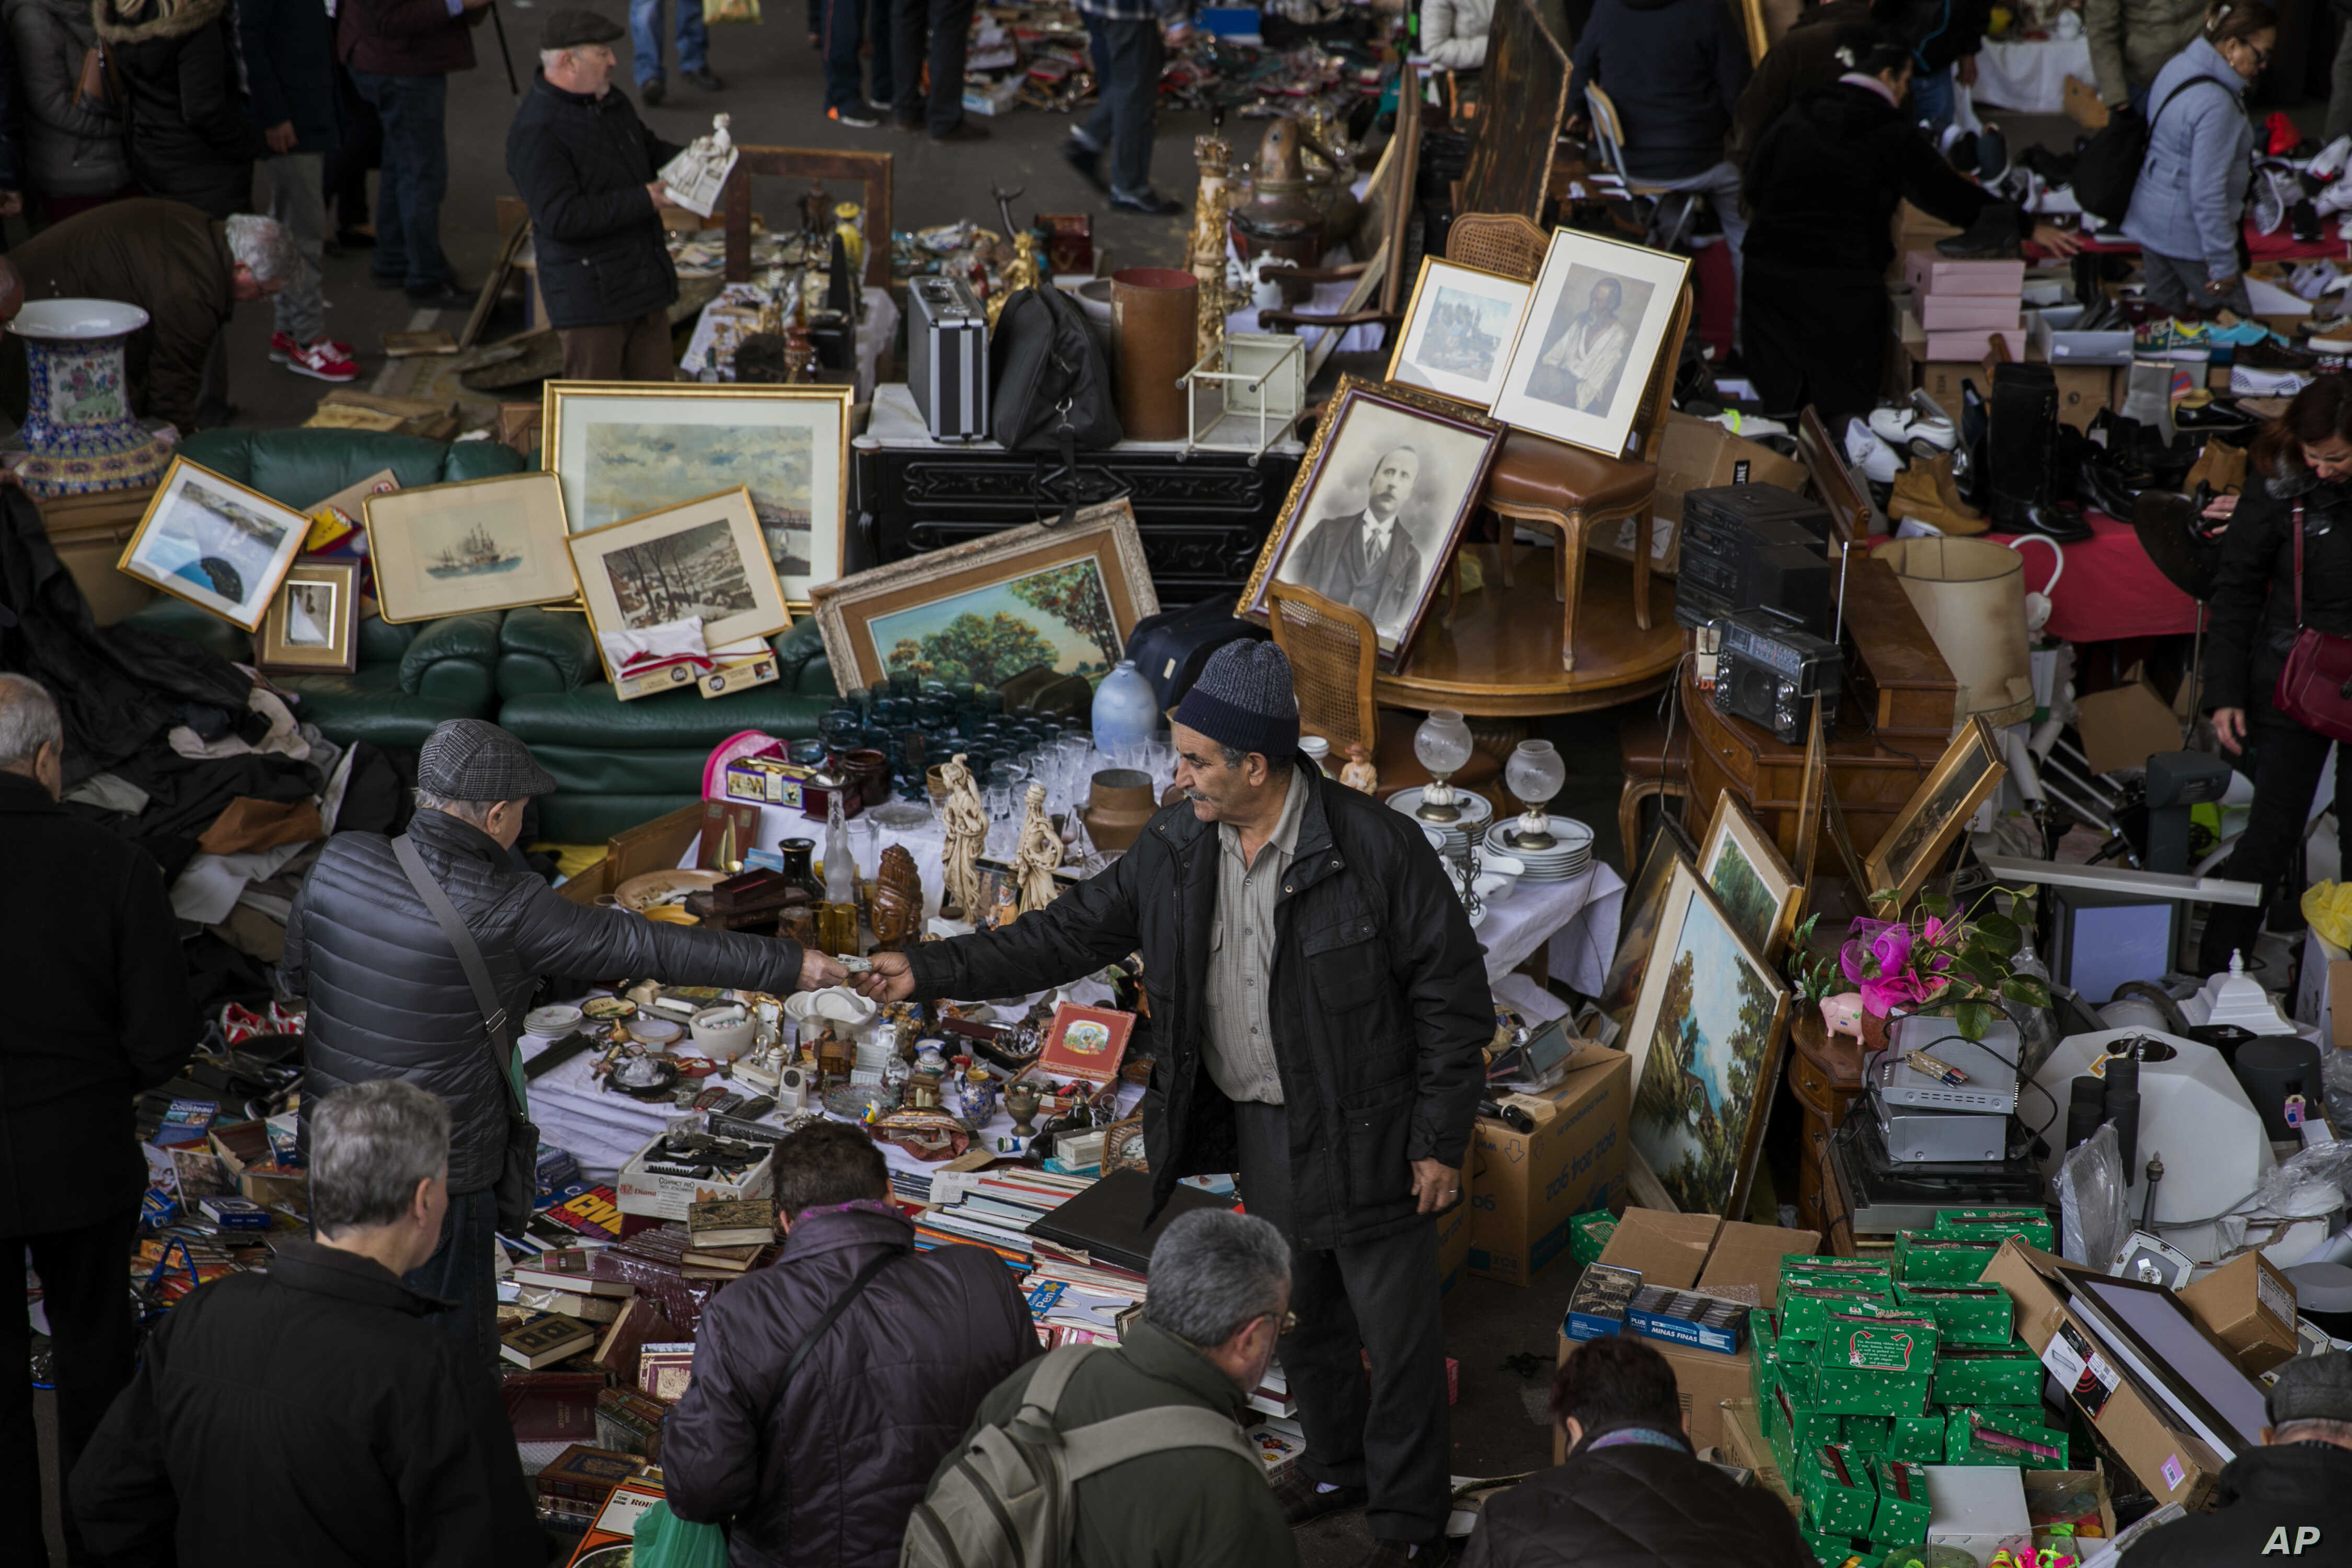 People buy items at a stall street in Barcelona, Spain, Monday, Dec. 18, 2017. Jittery businessmen in Catalonia have put their investment plans on ice as they brace for the region's parliamentary election on Thursday, Dec. 21, 2017.